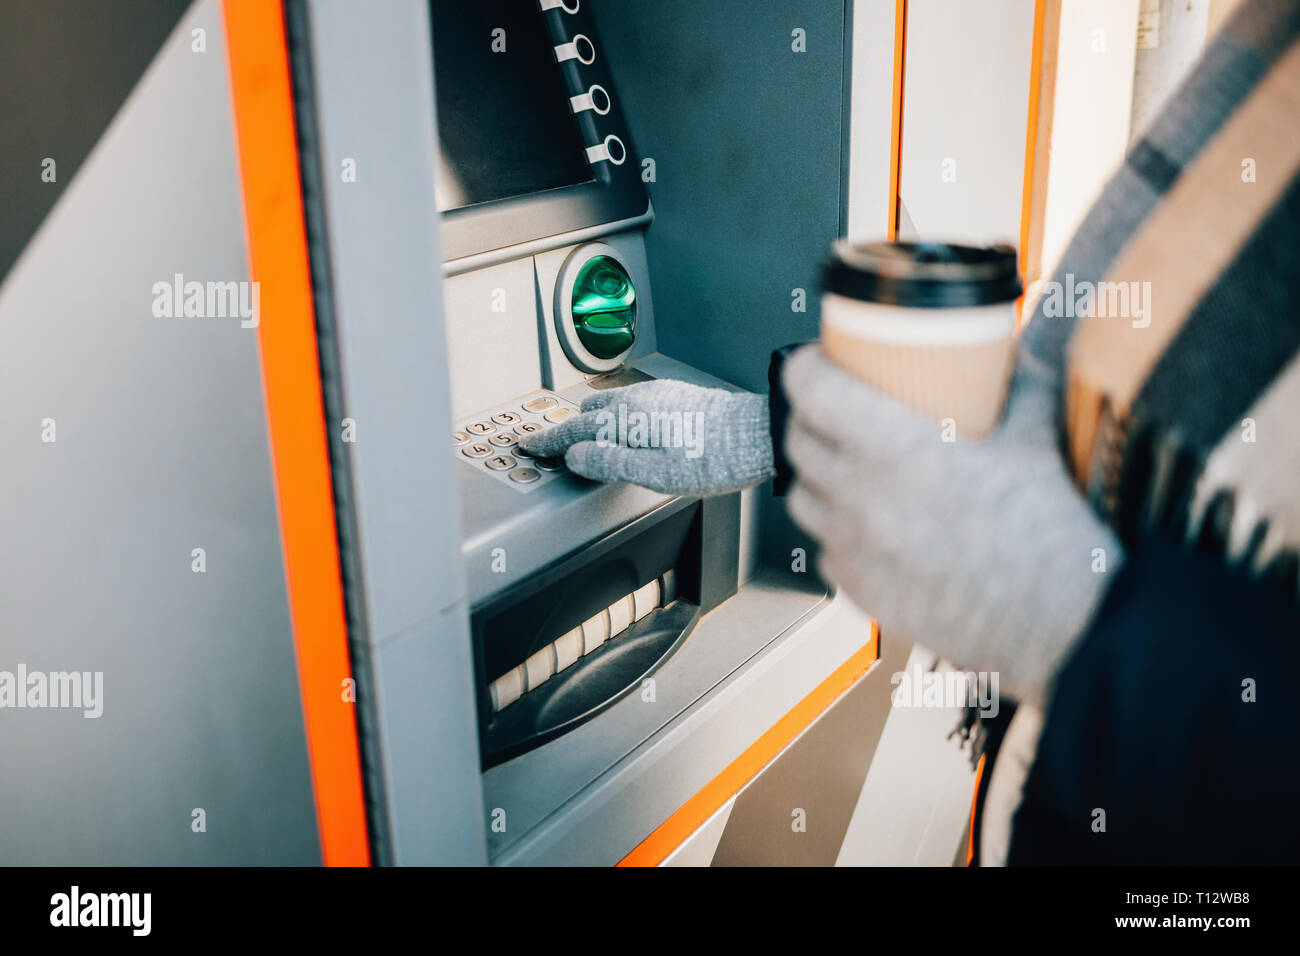 Close-up young woman pressing buttons on ATM keypad entering PIN and drinking coffee on city street in winter day. - Stock Image